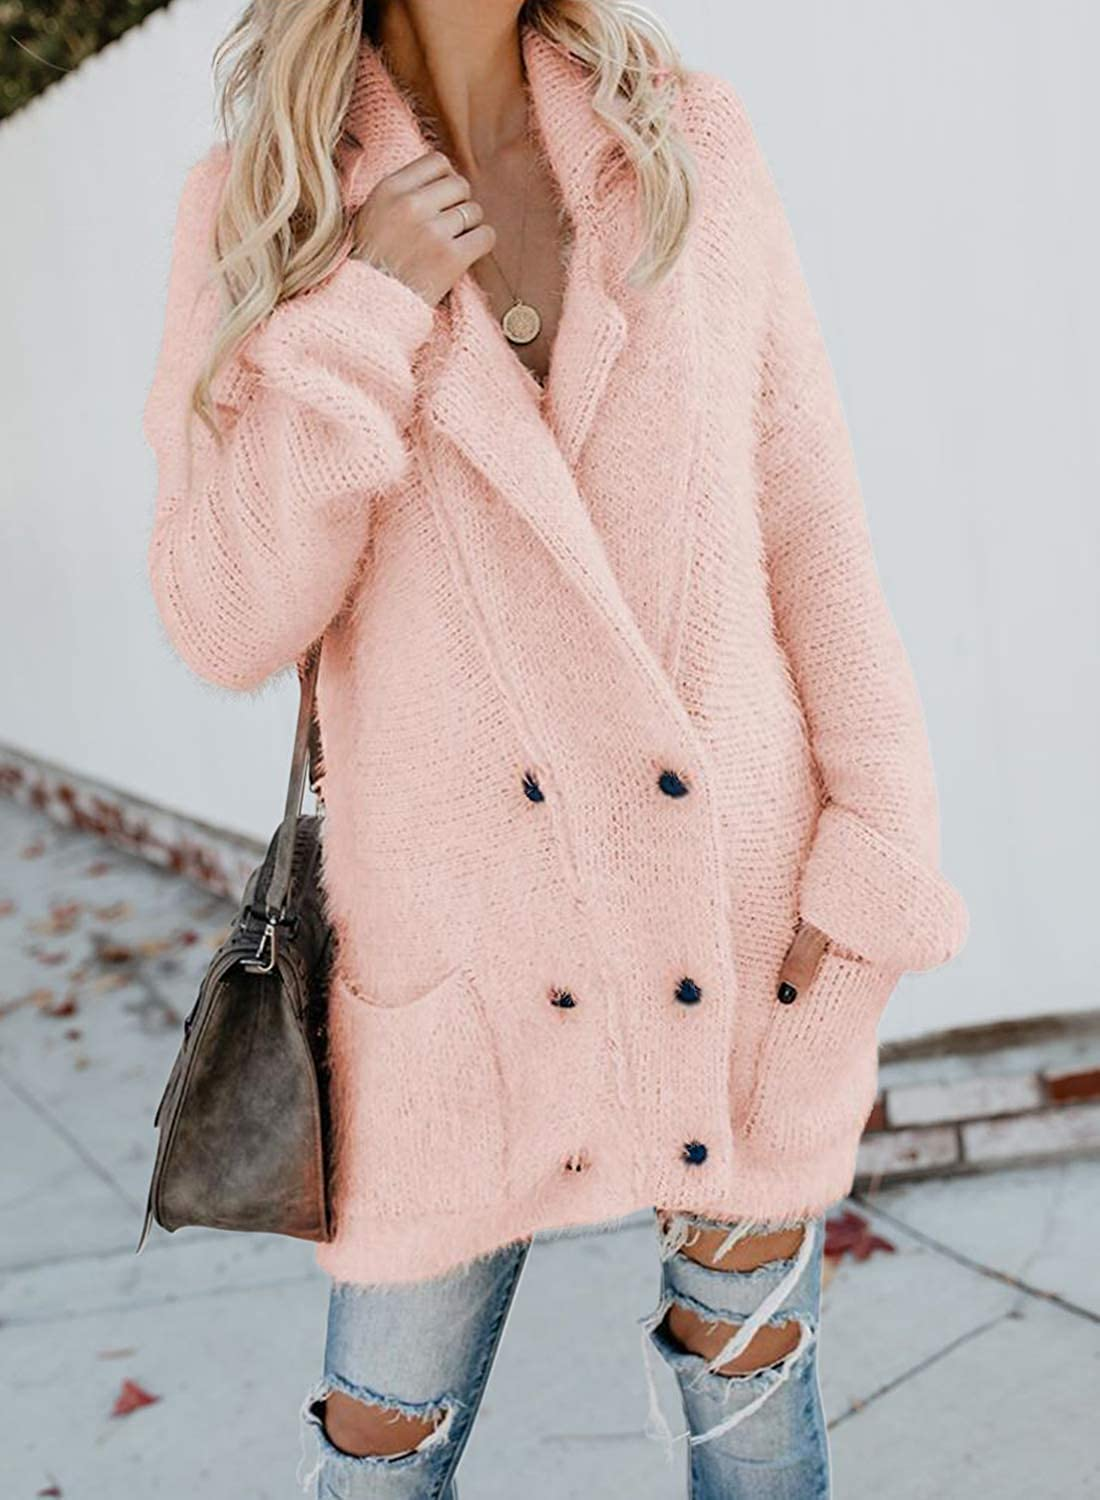 Asvivid Womens Winter Chunky Fuzzy Fleece Lapel Button Down Sweater Cardigans Outwear Coats with Pockets